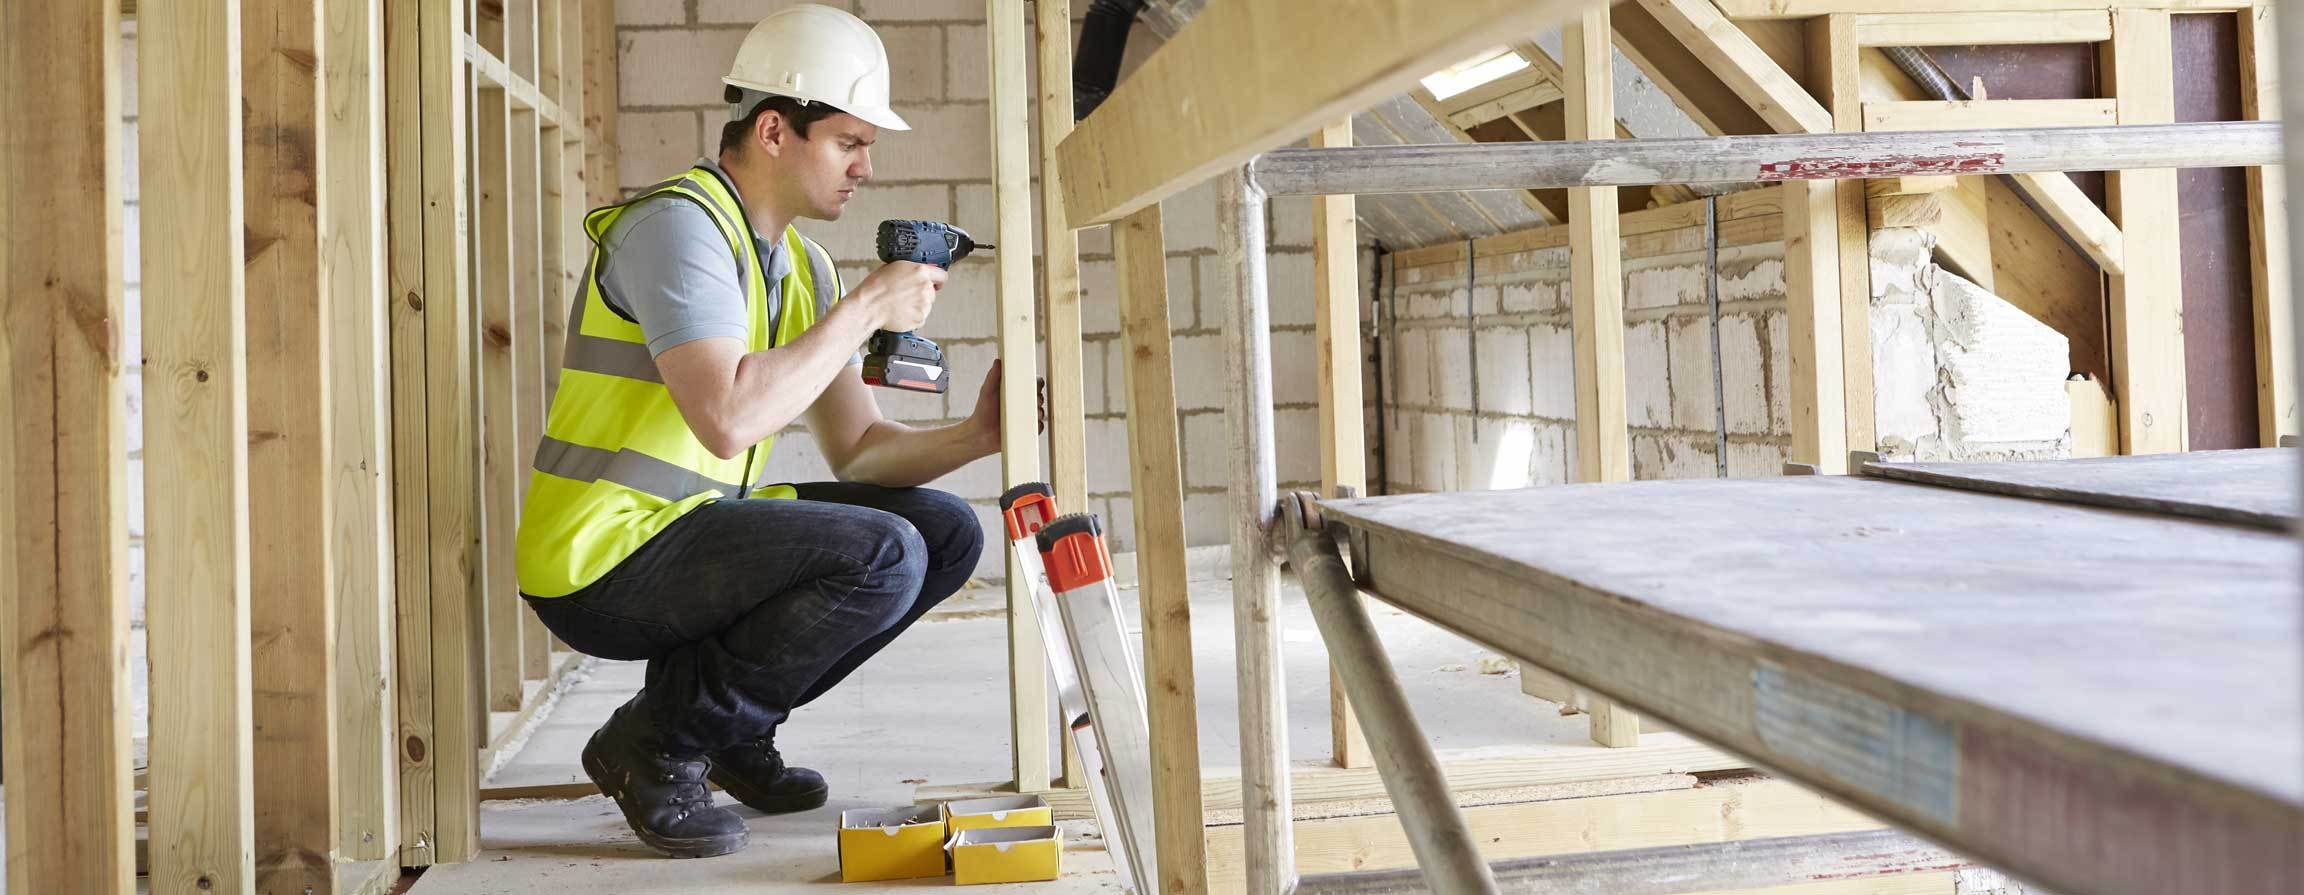 Man in construction uniform using a drill to construct the interior of a home or business.